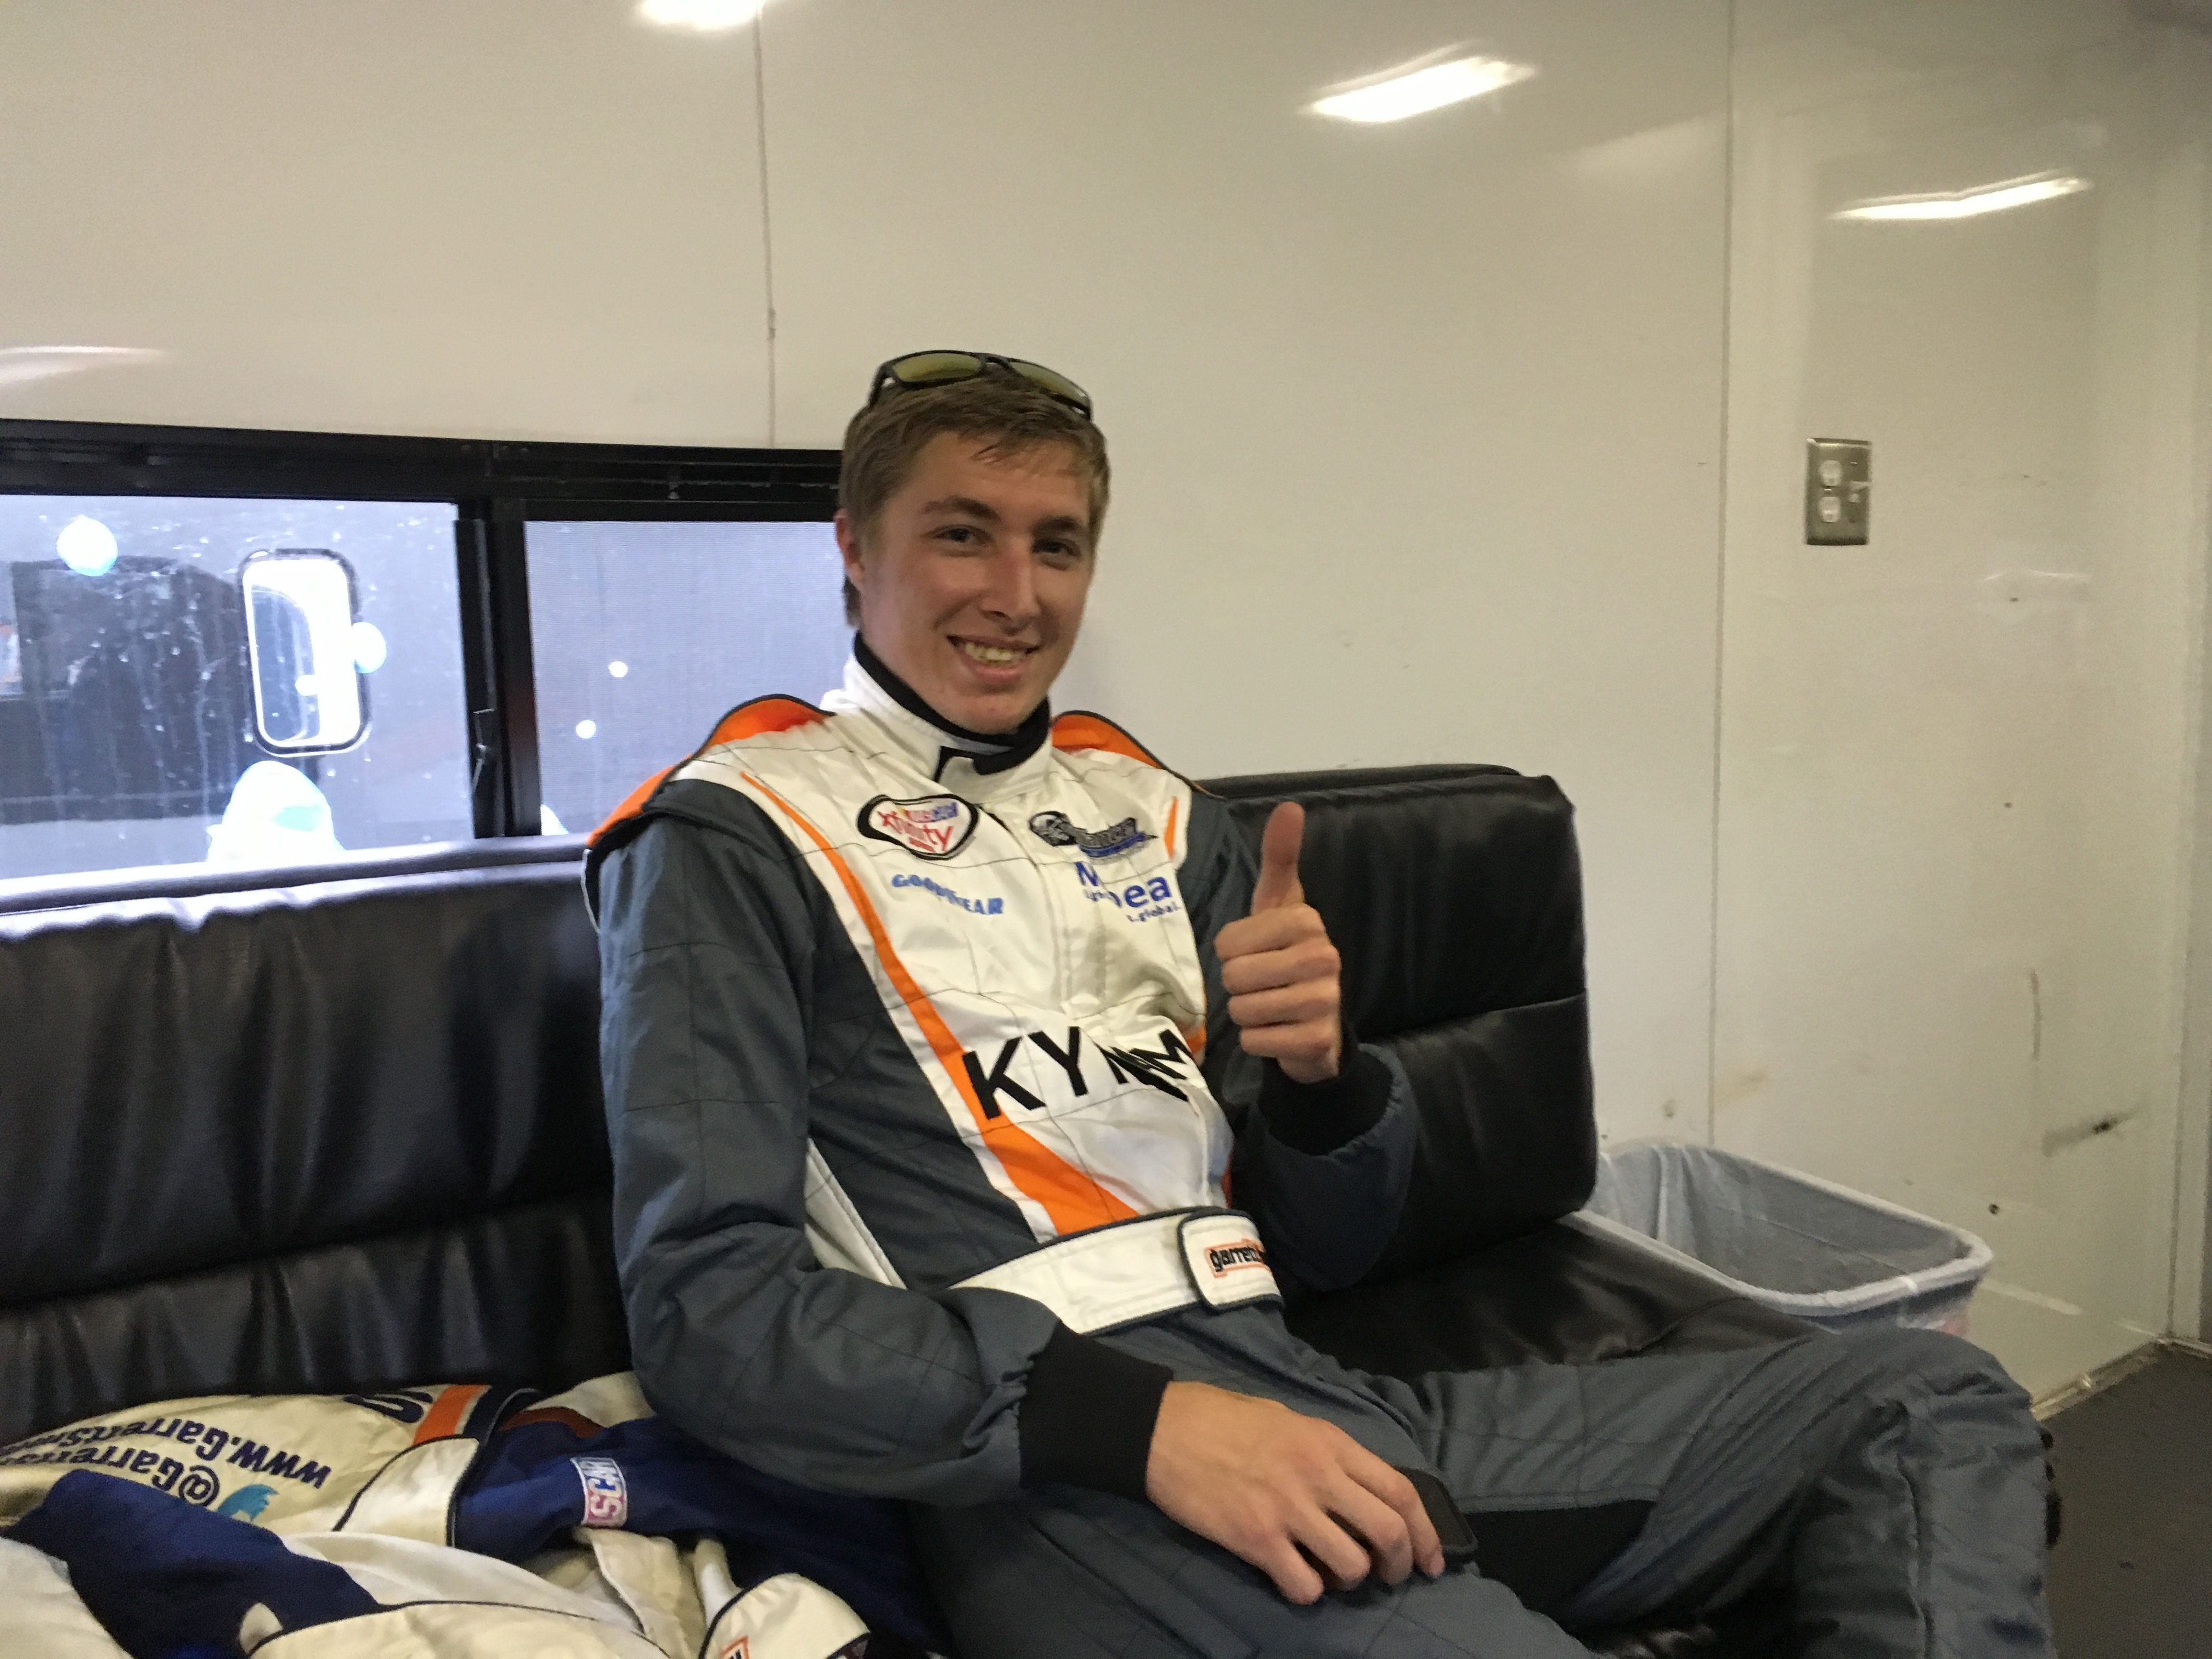 NASCAR XFINITY Series driver Garrett Smithley in his trailer before a weekend race at Kentucky Speedway. Smithley aslo drove in the NCWTS race Thursday, thanks to a sponsorship from Mubea and KY Fame (photo by Mark Hansel).